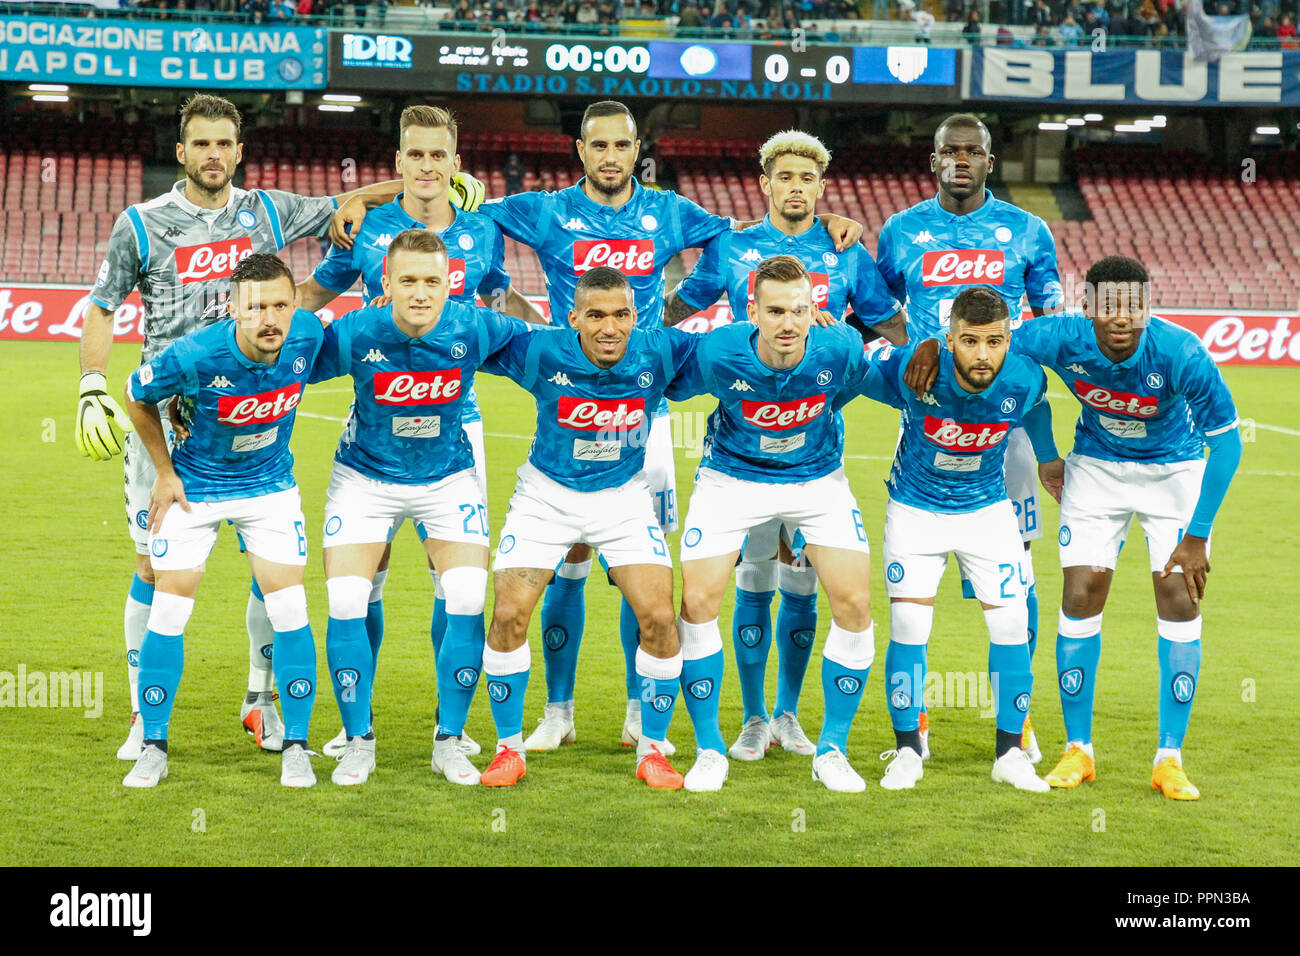 Napoli Team High Resolution Stock Photography And Images Alamy